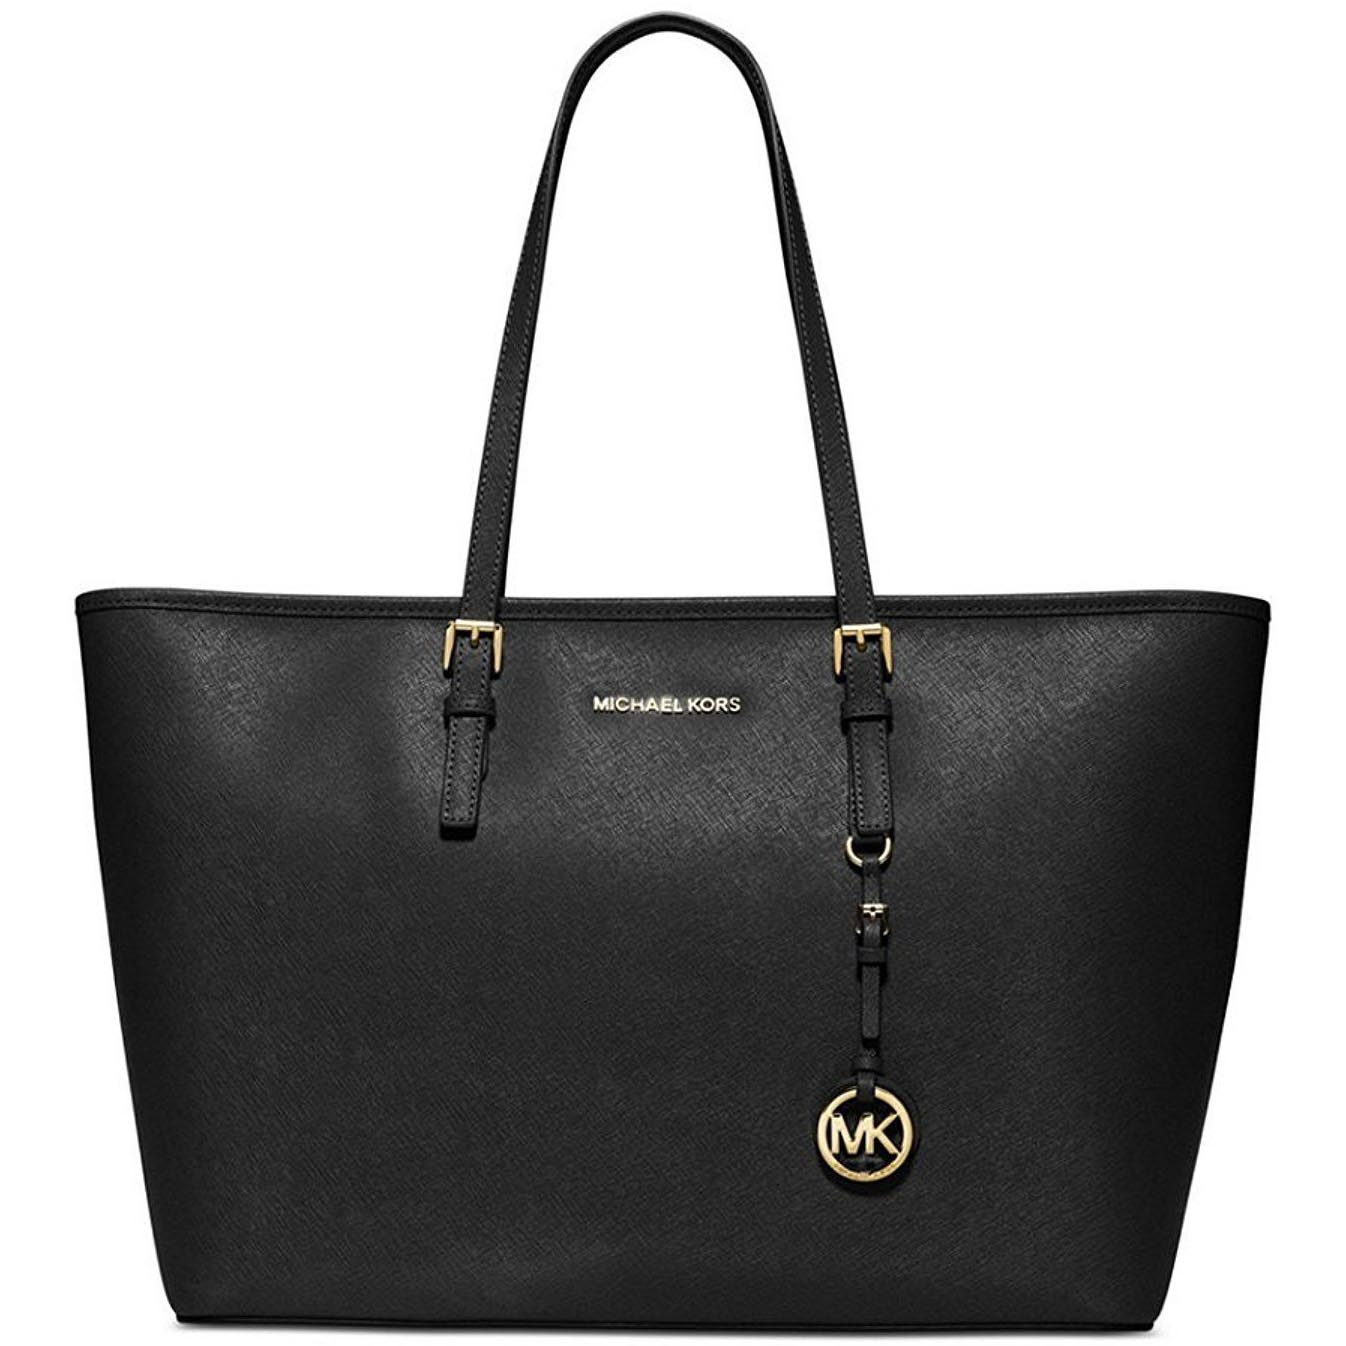 Michael Kors Jet Set Travel Saffiano Leather Medium Tote Black # 38F6GTVT2L